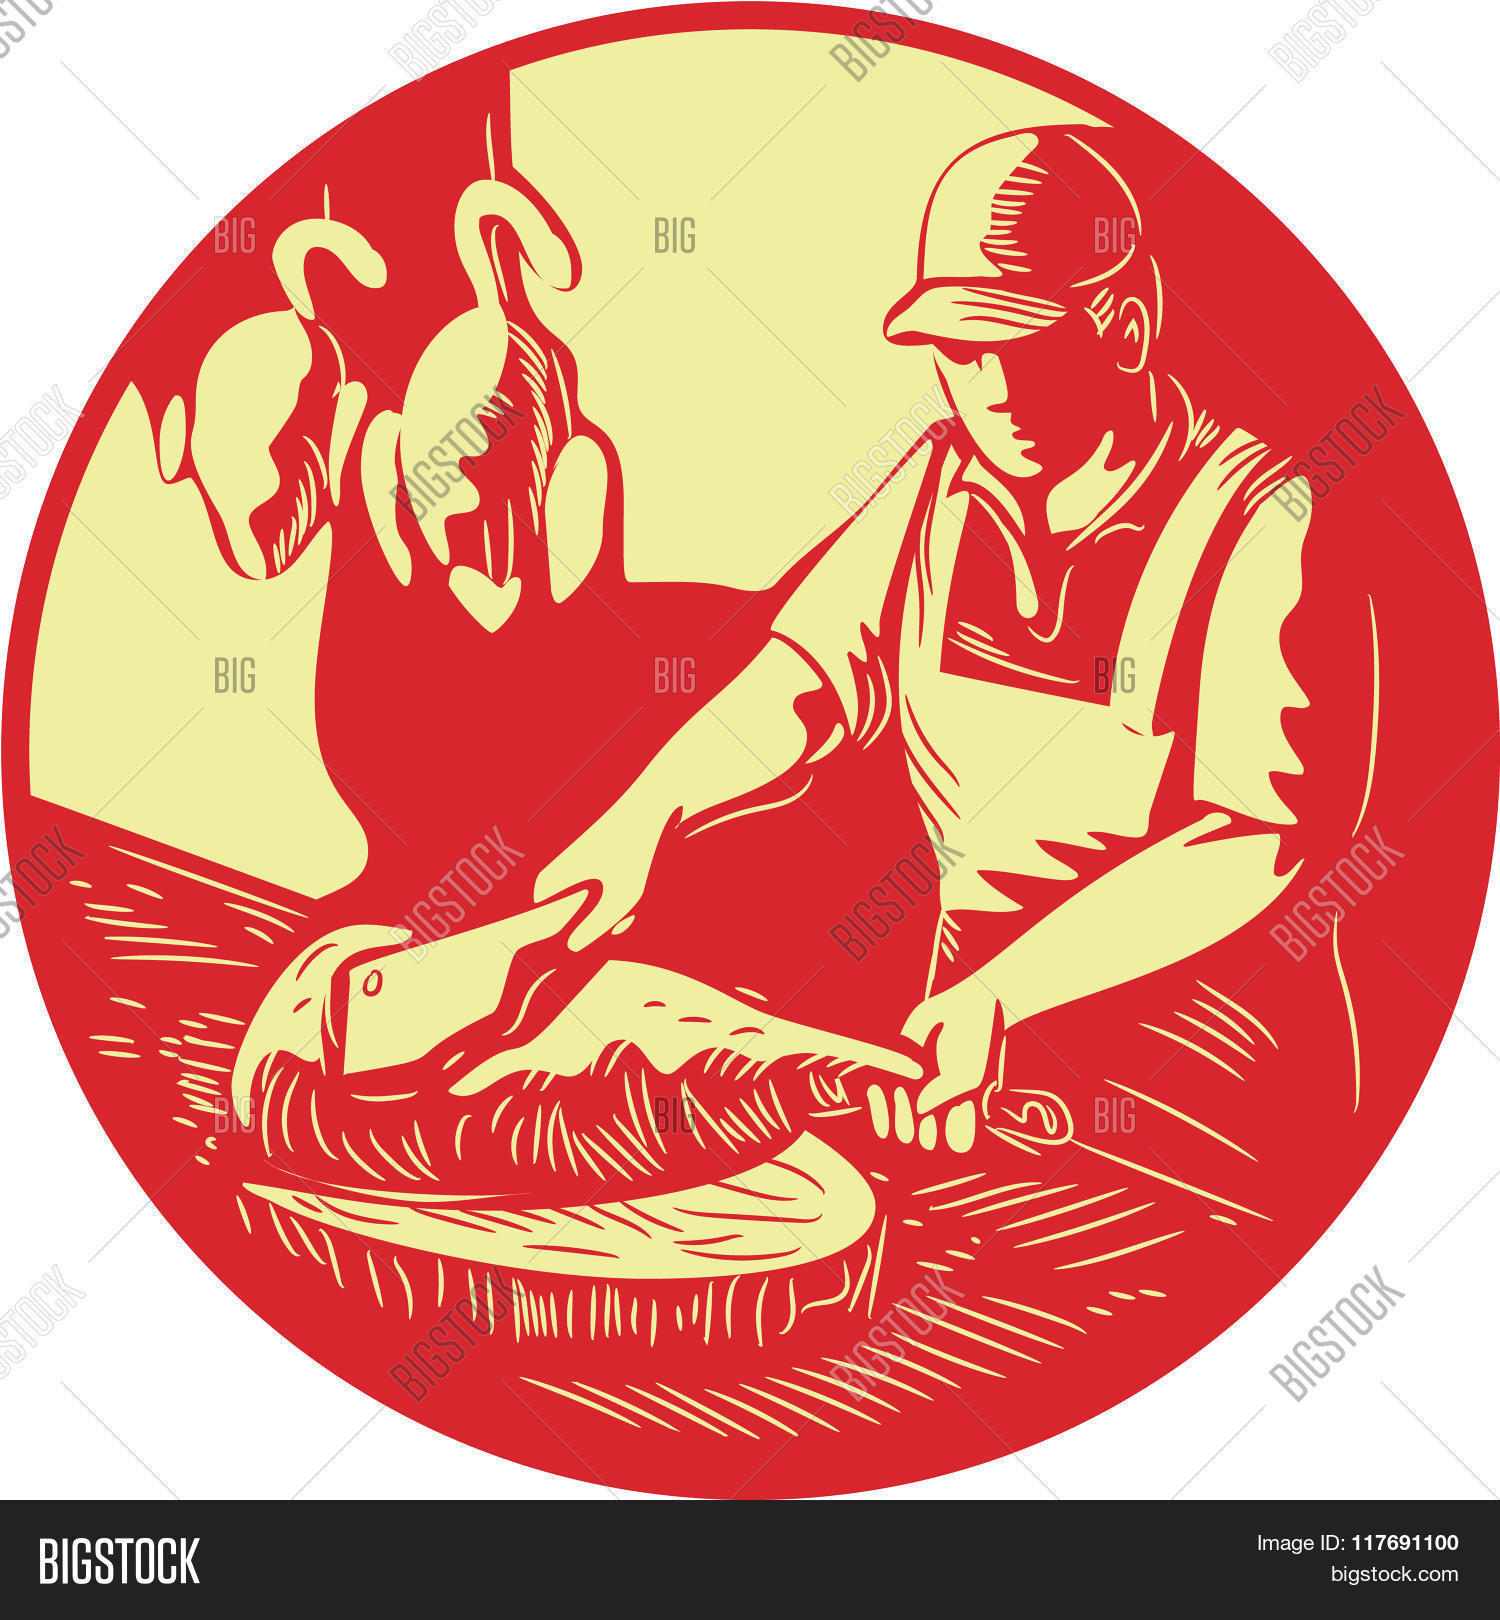 apron,artwork,asian,block,board,caterer,catering,chef,chicken,chinese,chop,chopping,circle,cleaver,cook,duck,engraving,food,graphic,hat,illustration,knife,linocut,linoleum-block,male,man,market,meat,oriental,oval,poultry,printmaking,prints,retro,selling,stall,stand,wood,wood-block,woodblock,woodcut,worker